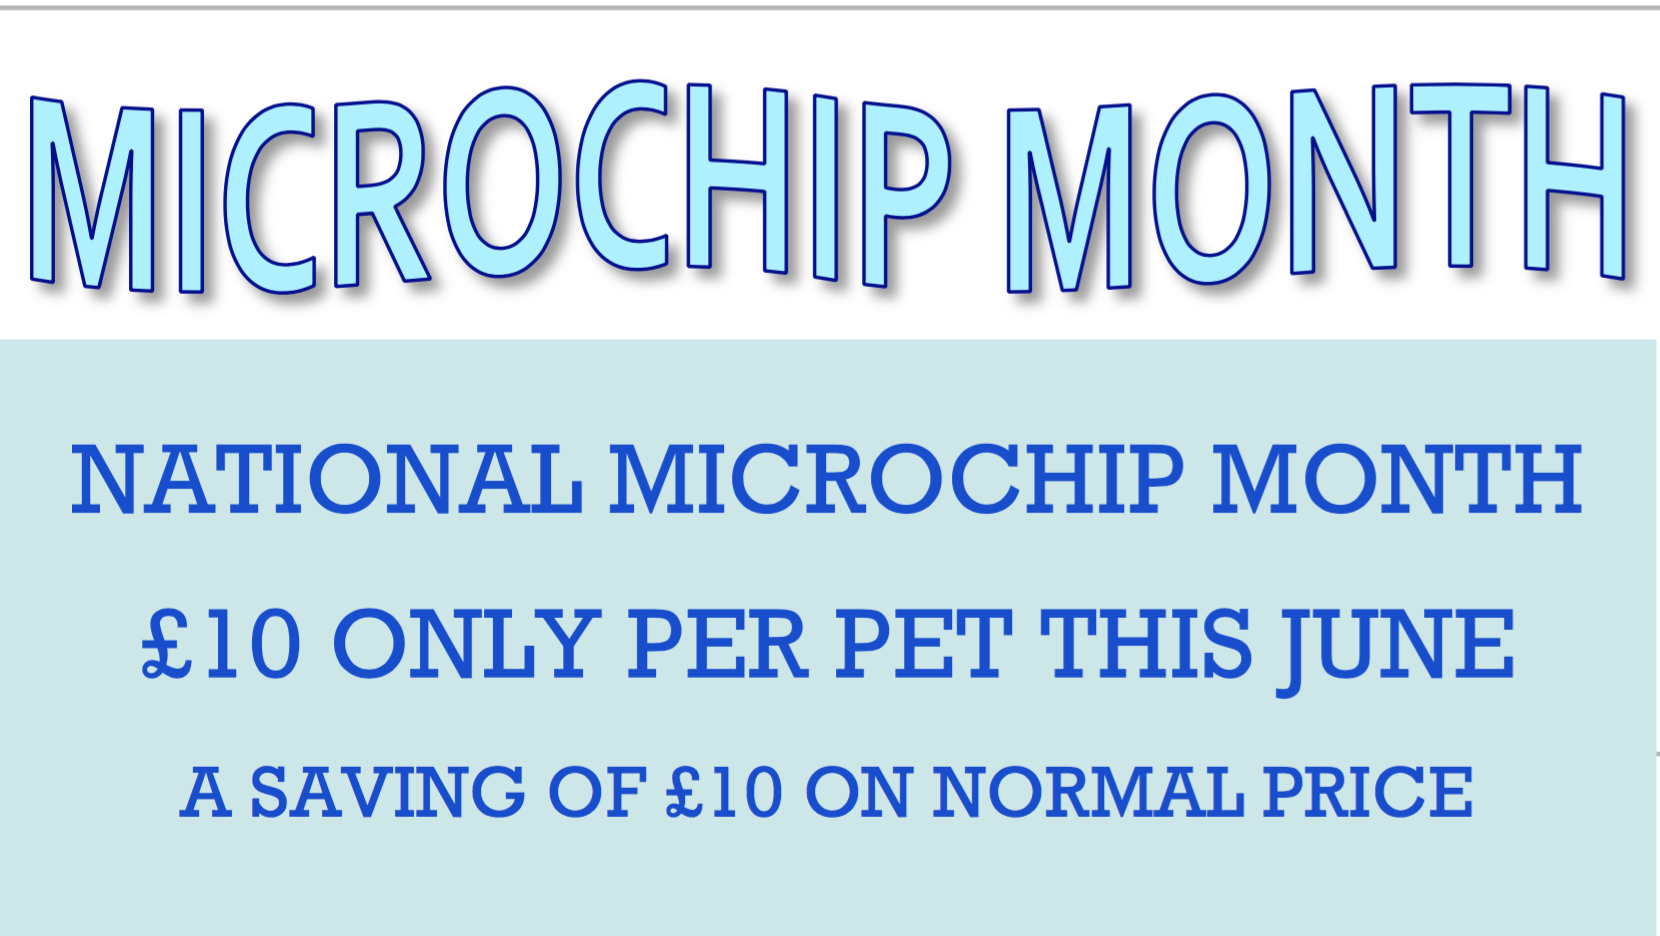 Microchip Offer (1)